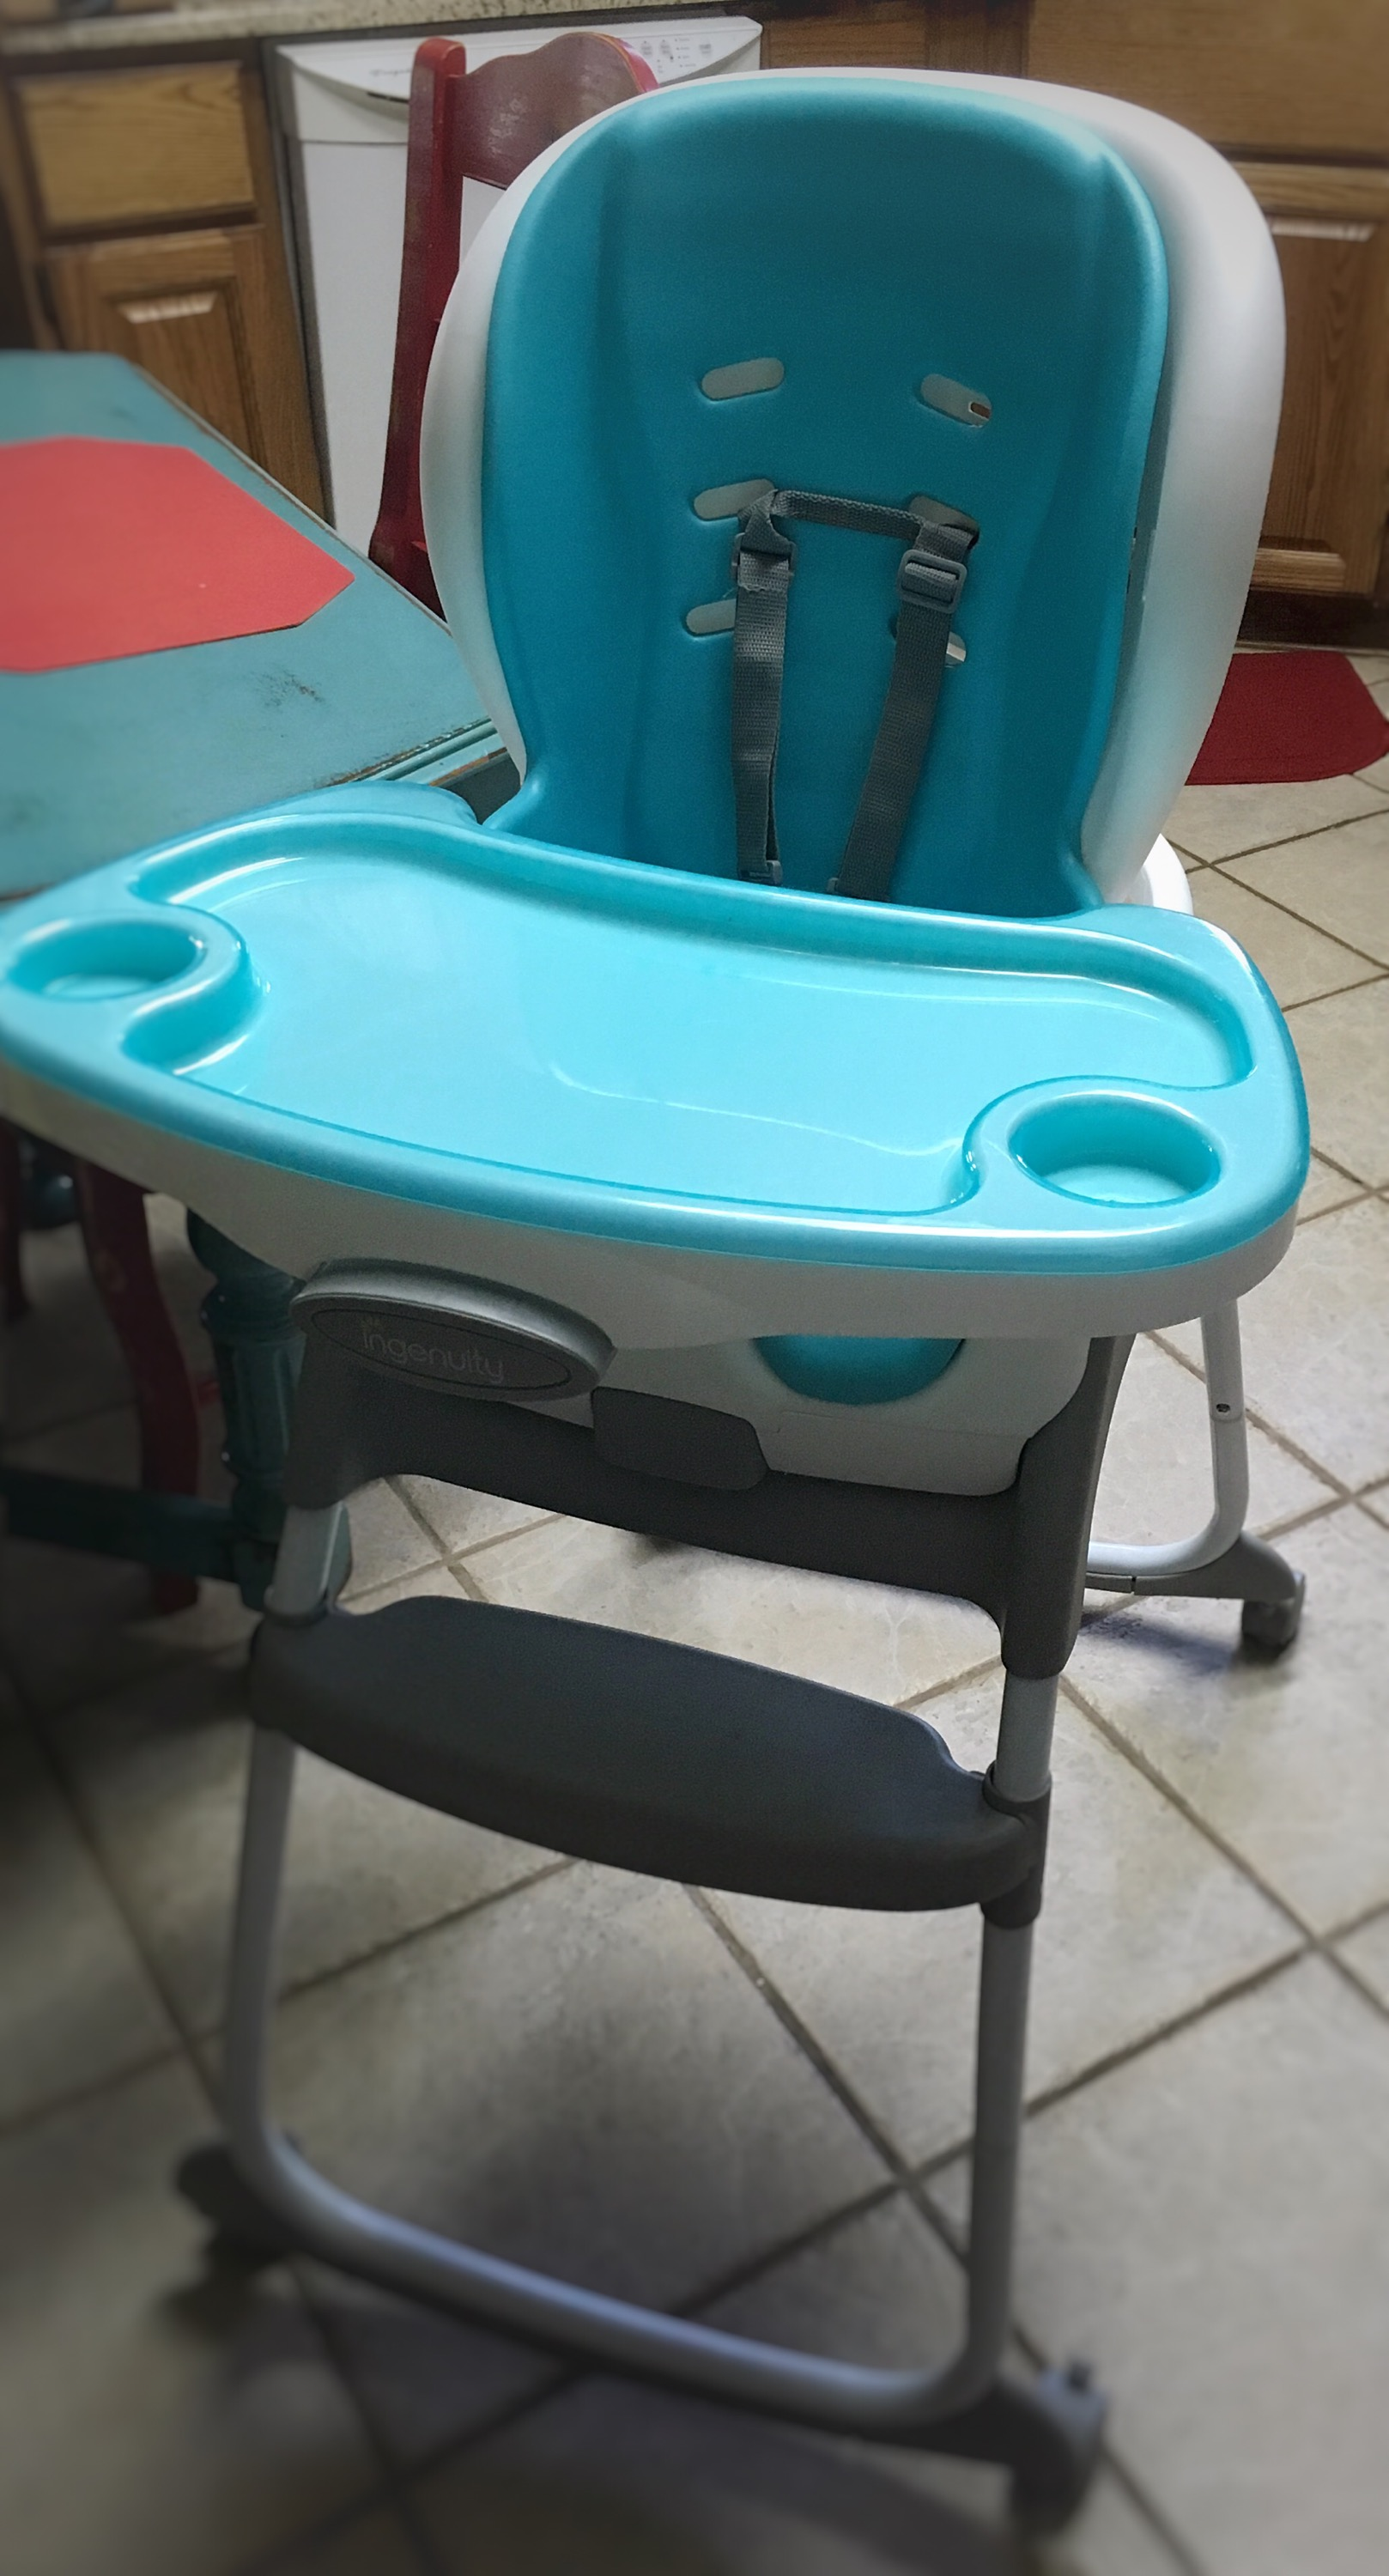 ingenuity high chair 3 in 1 cover adjustable drafting mommy review monday trio smartclean the tray comes on and off easily adjusts out to accommodate growth